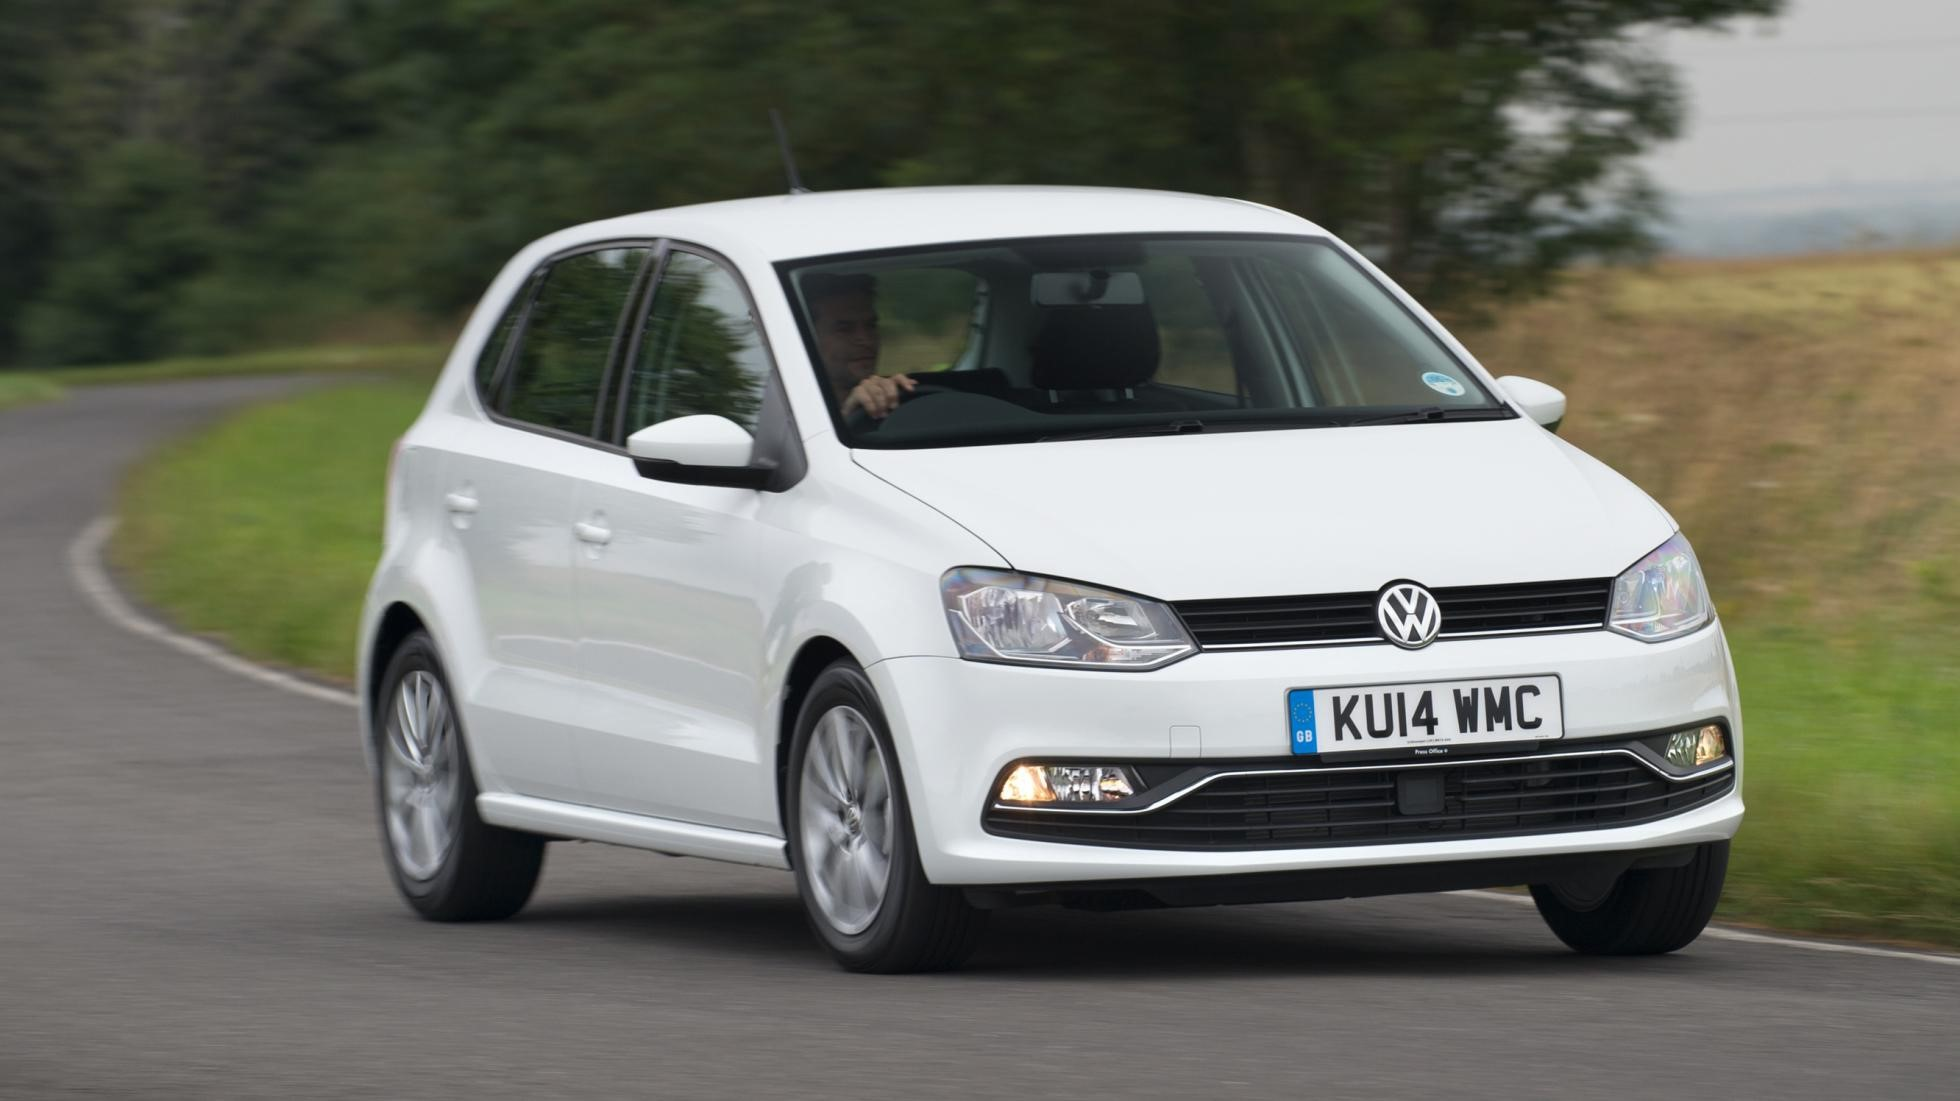 Pictures of Volkswagen Polo